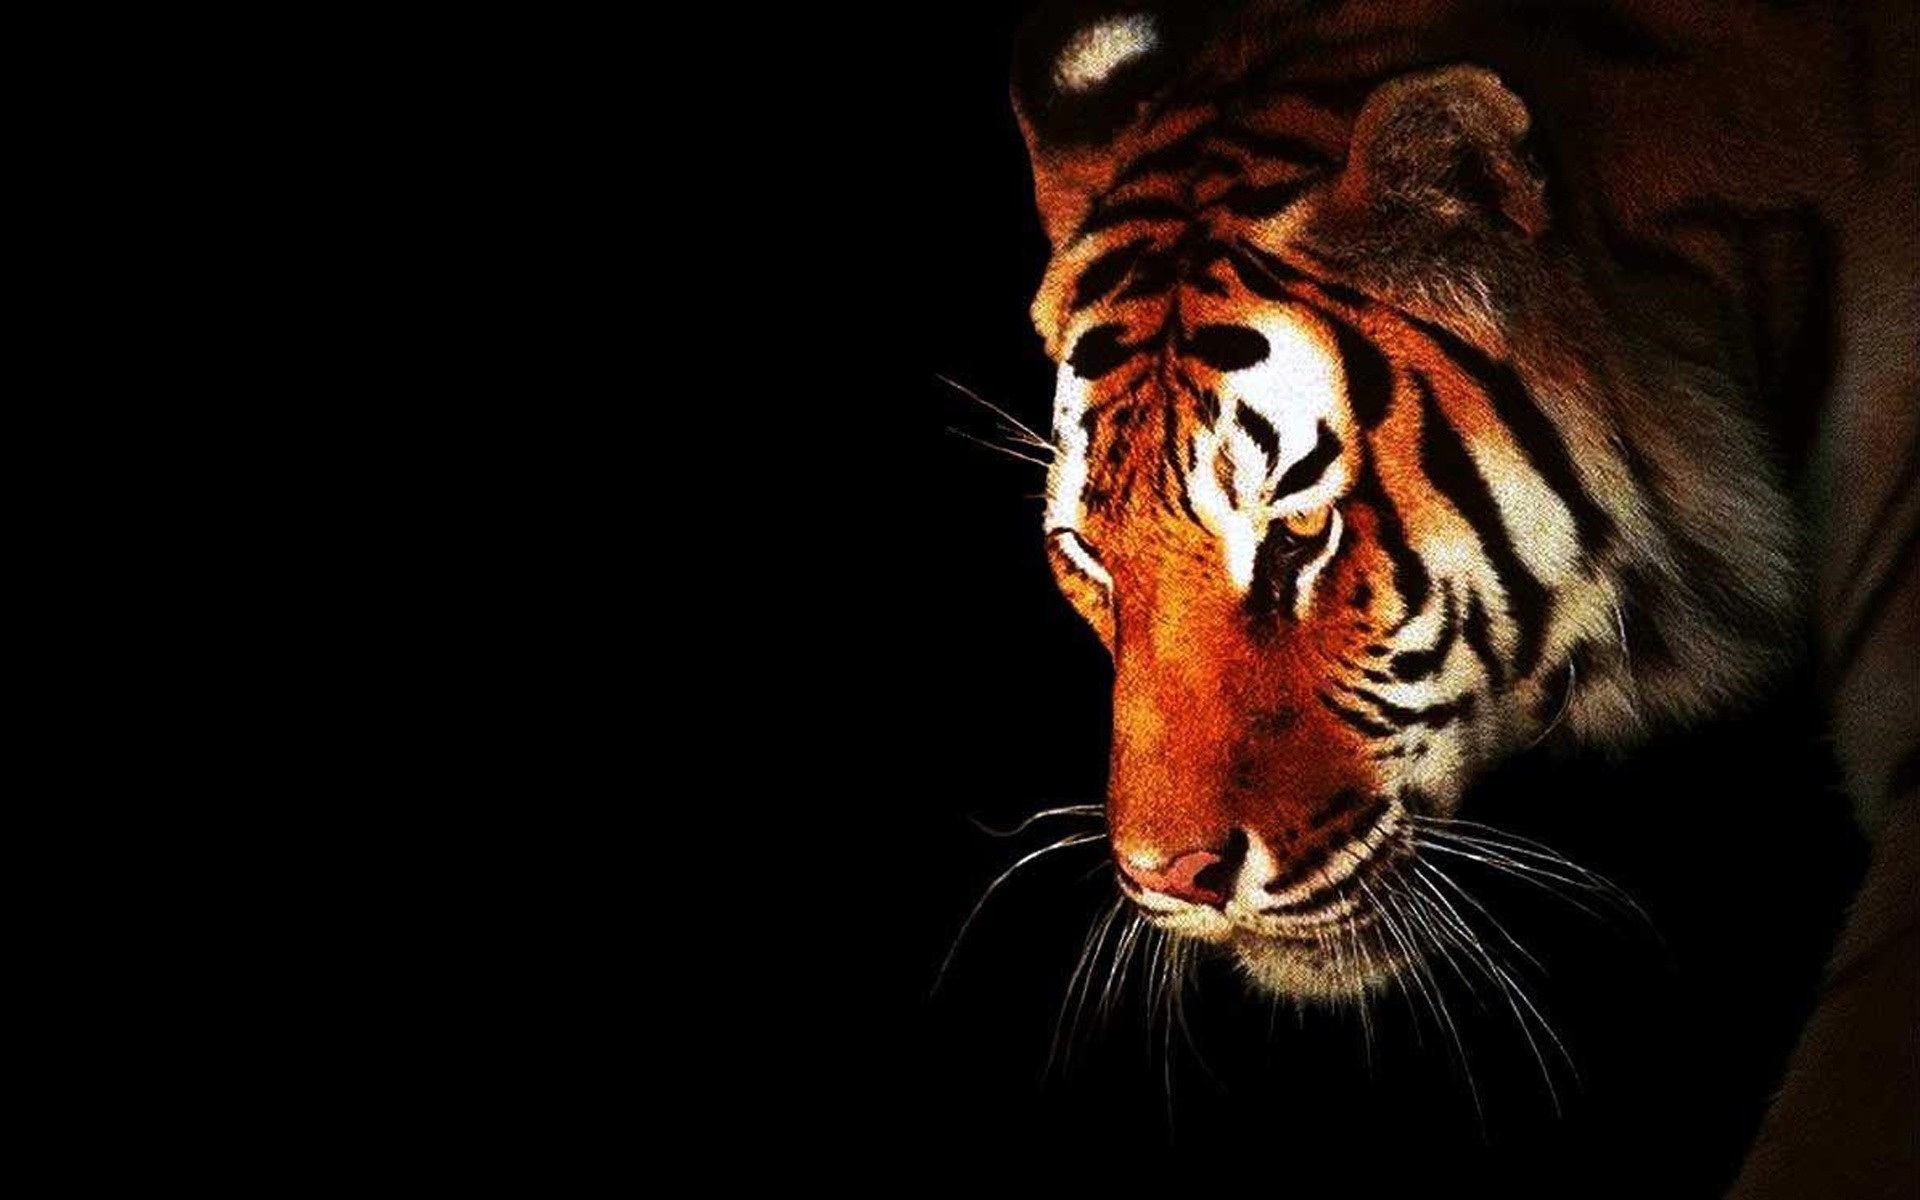 Cool Tiger Wallpapers Hd